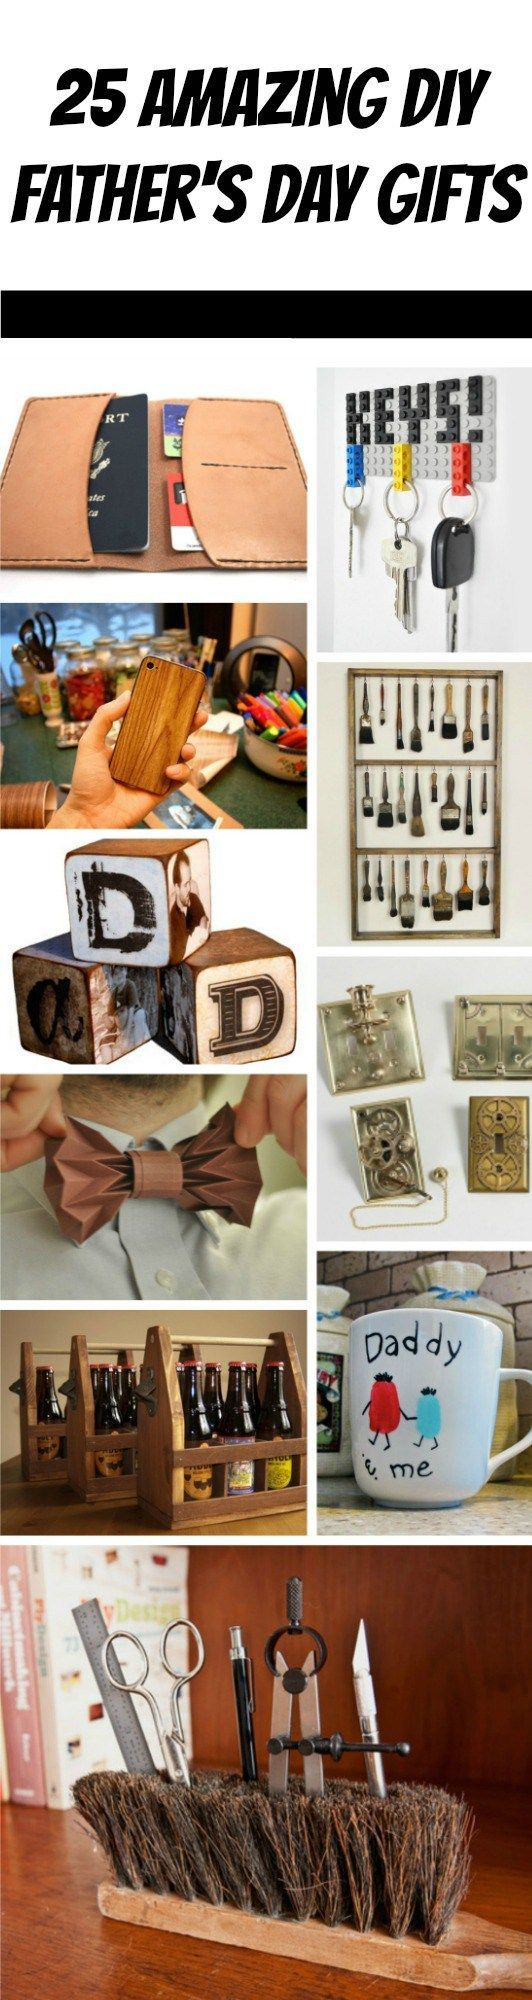 25 Ridiculously Awesome DIY Father's Day Gifts You Can Make